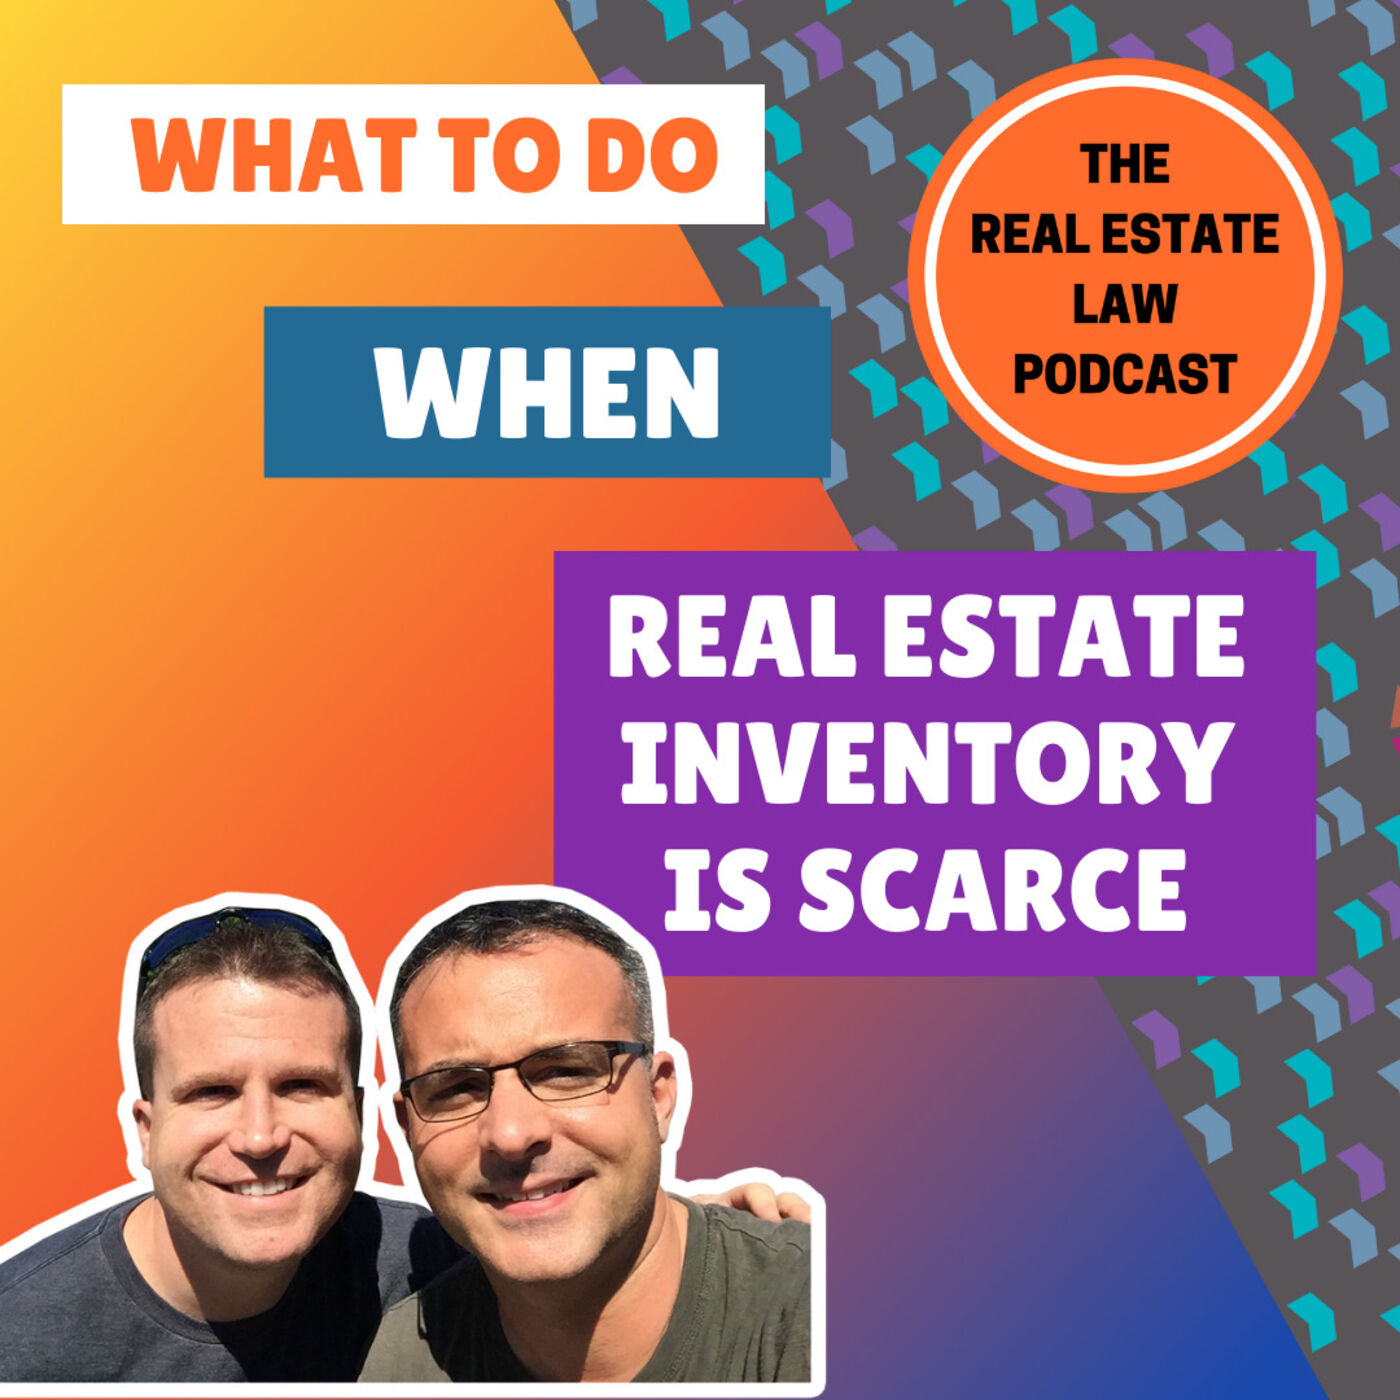 19 - What To Do When Real Estate Inventory Is Scarce